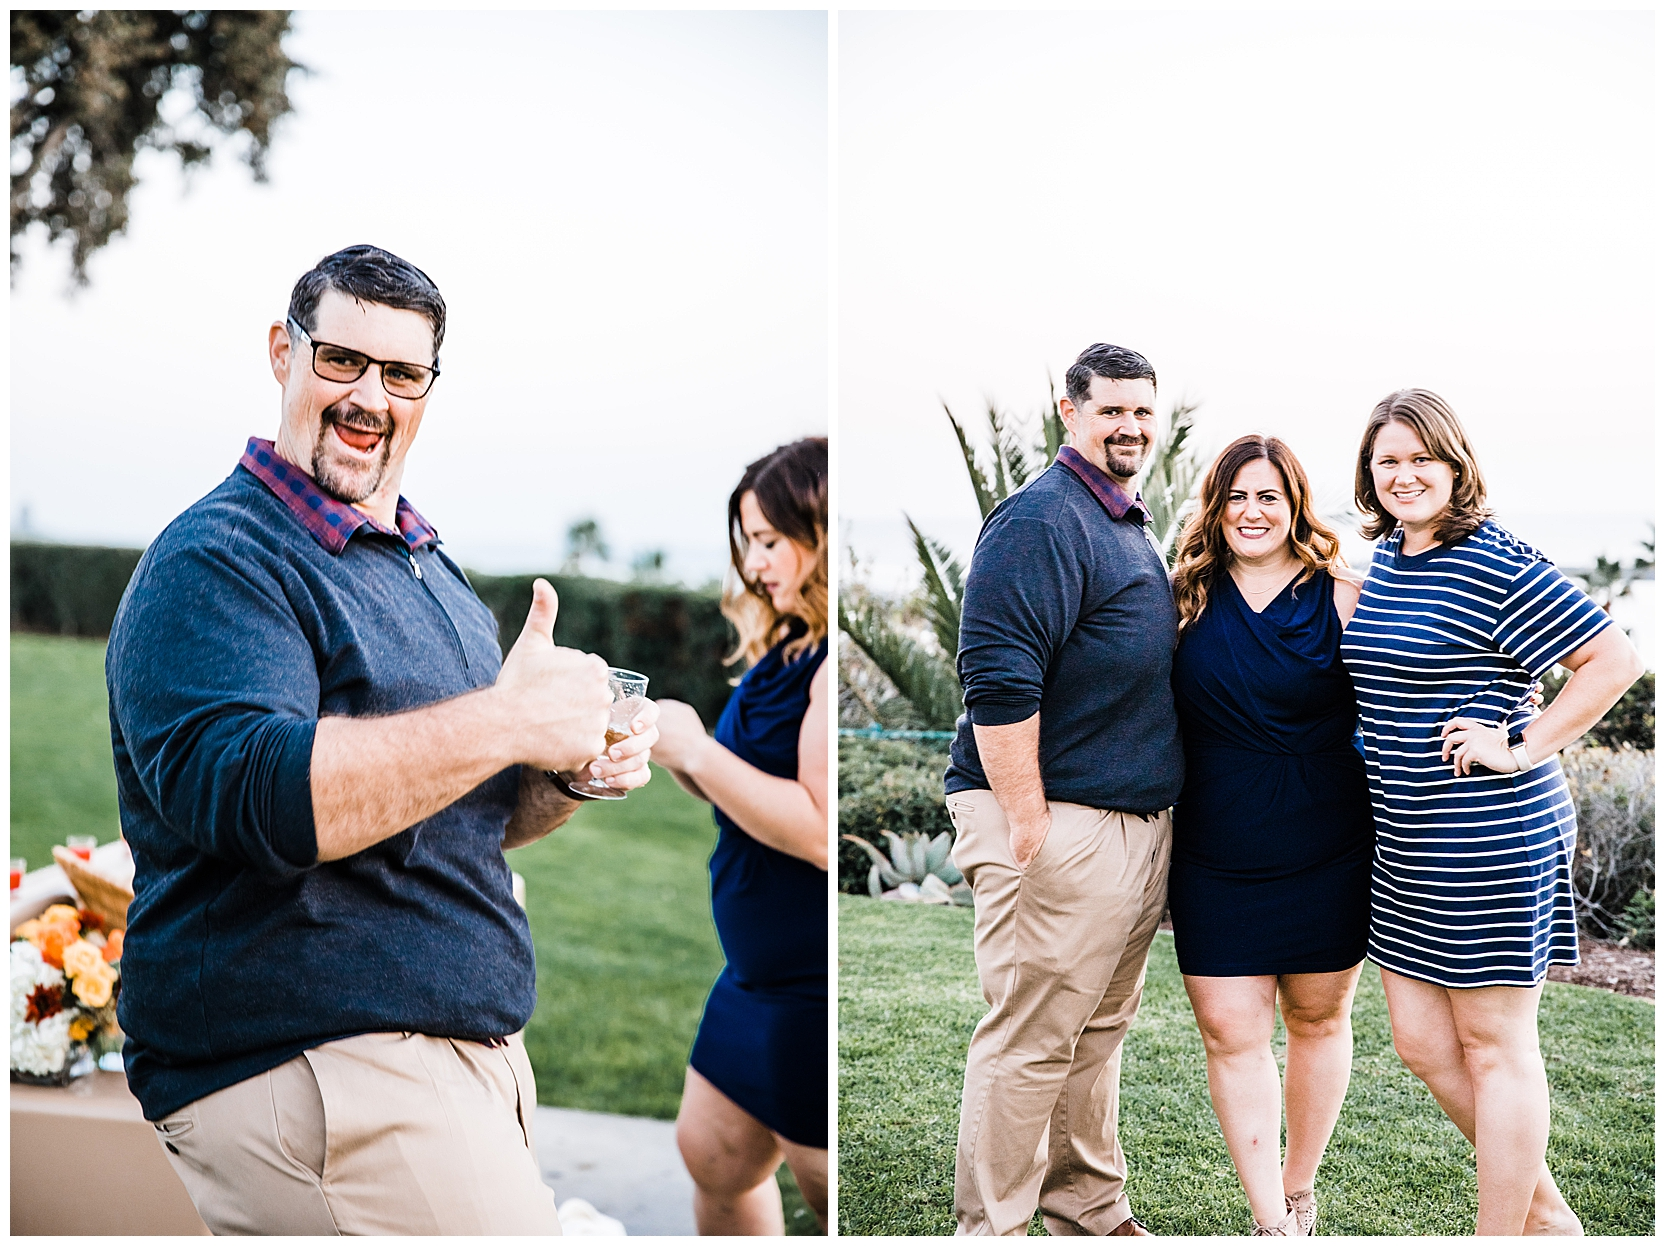 jessicafredericks_huntingtonbeach_proposal_sunset_engagement_0032.jpg